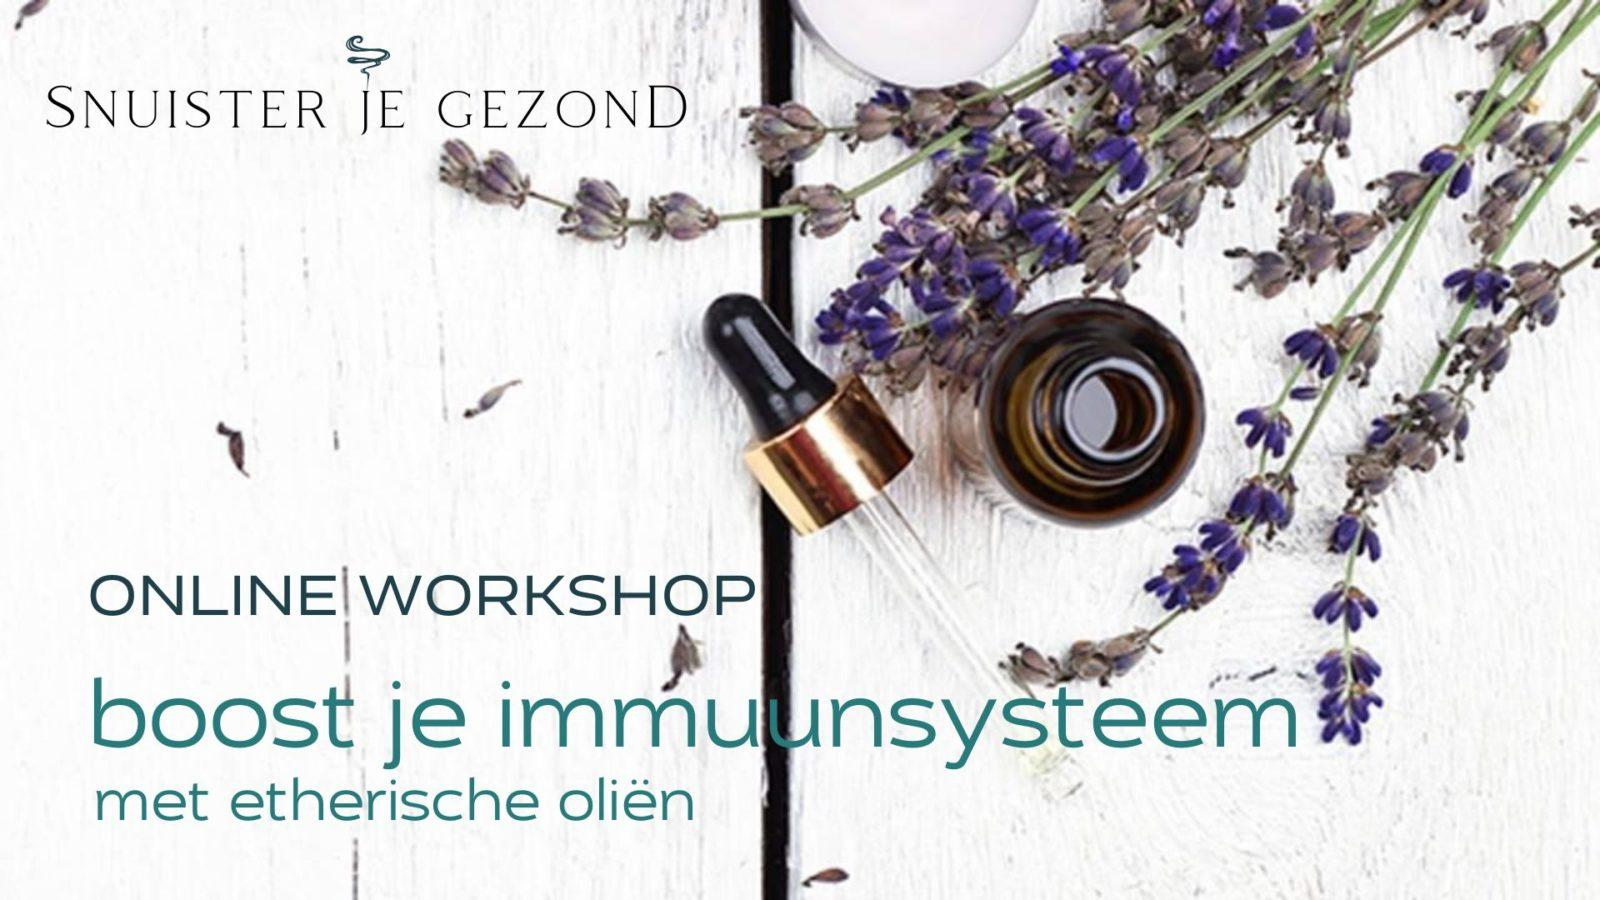 Online workshop Boost je immuunsysteem met etherische olie